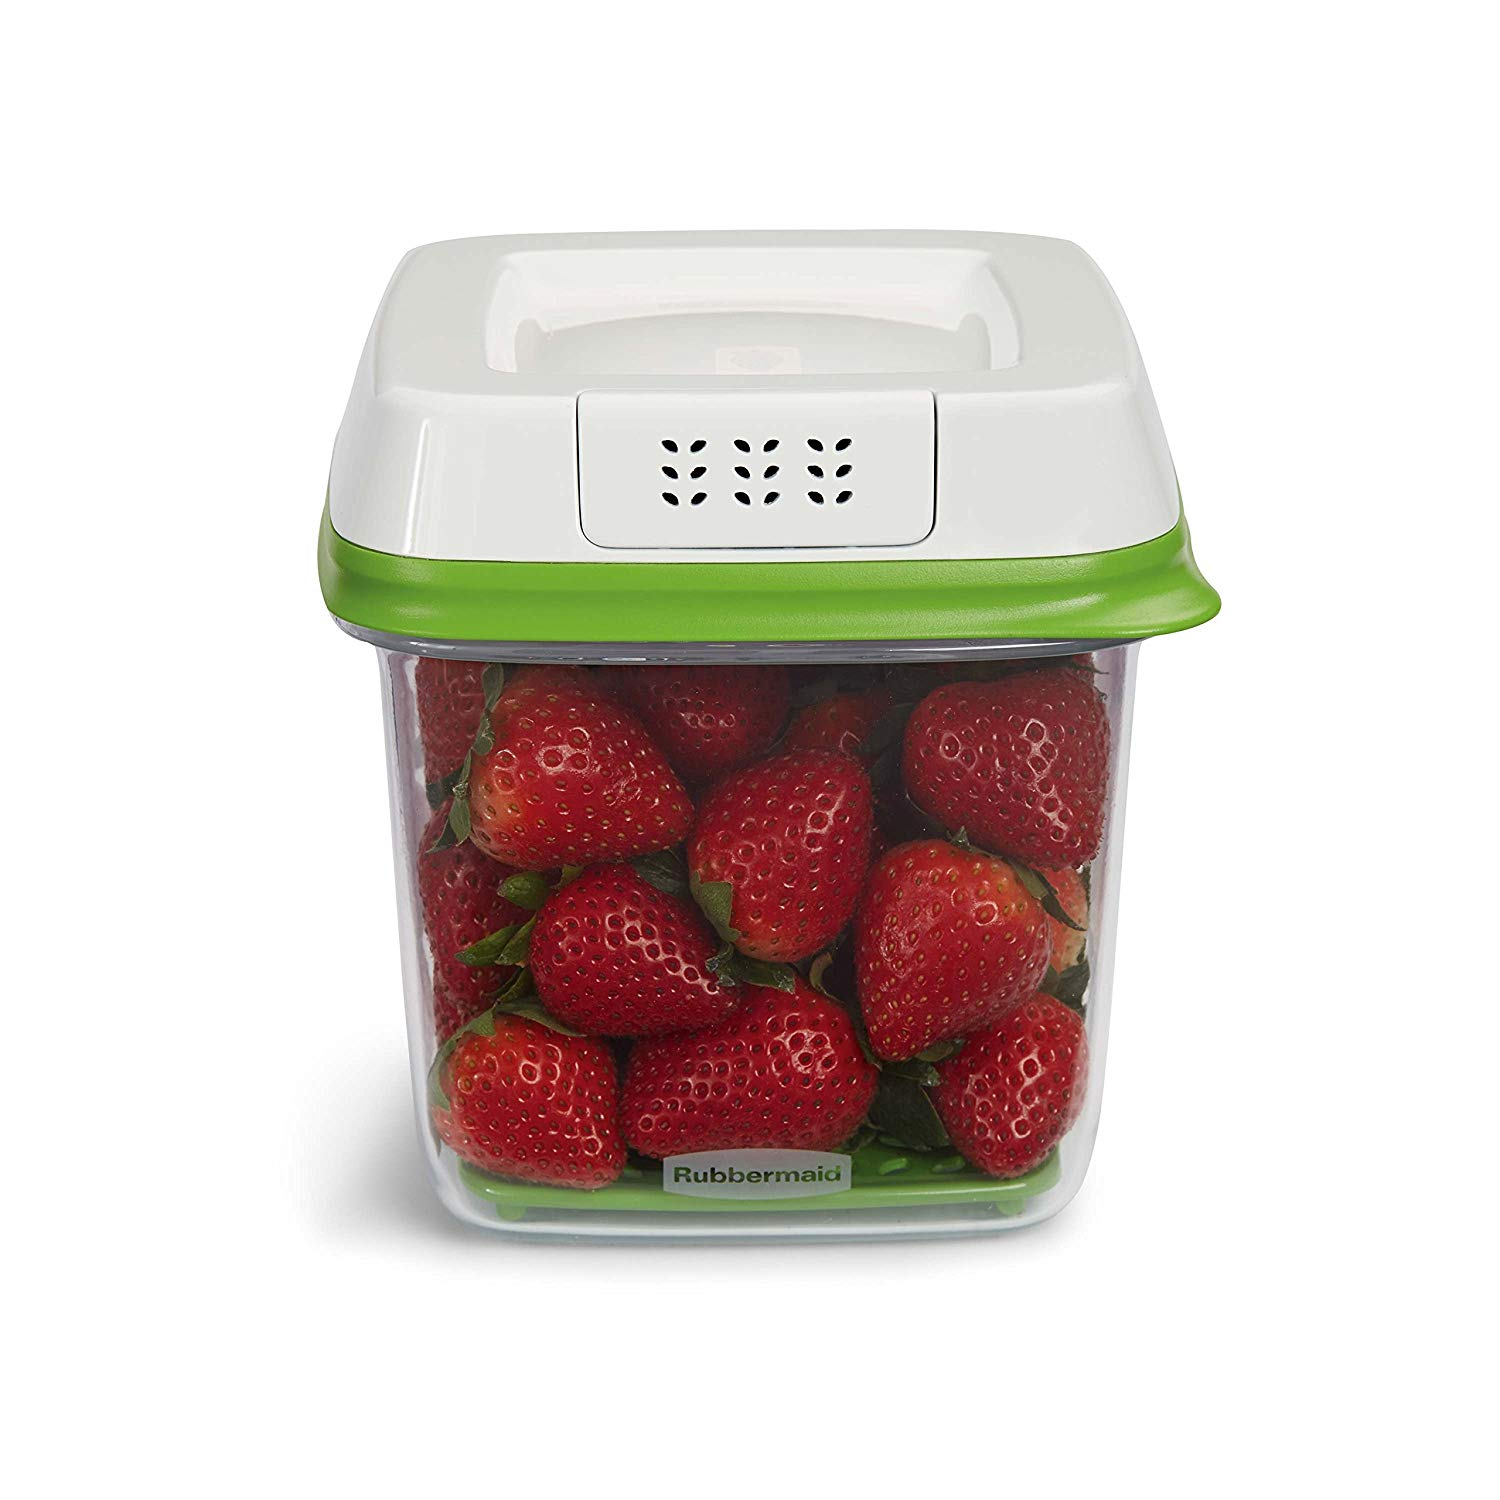 rubbermaid-freshworks-produce-saver-medium-6.3-cup-container20.jpg